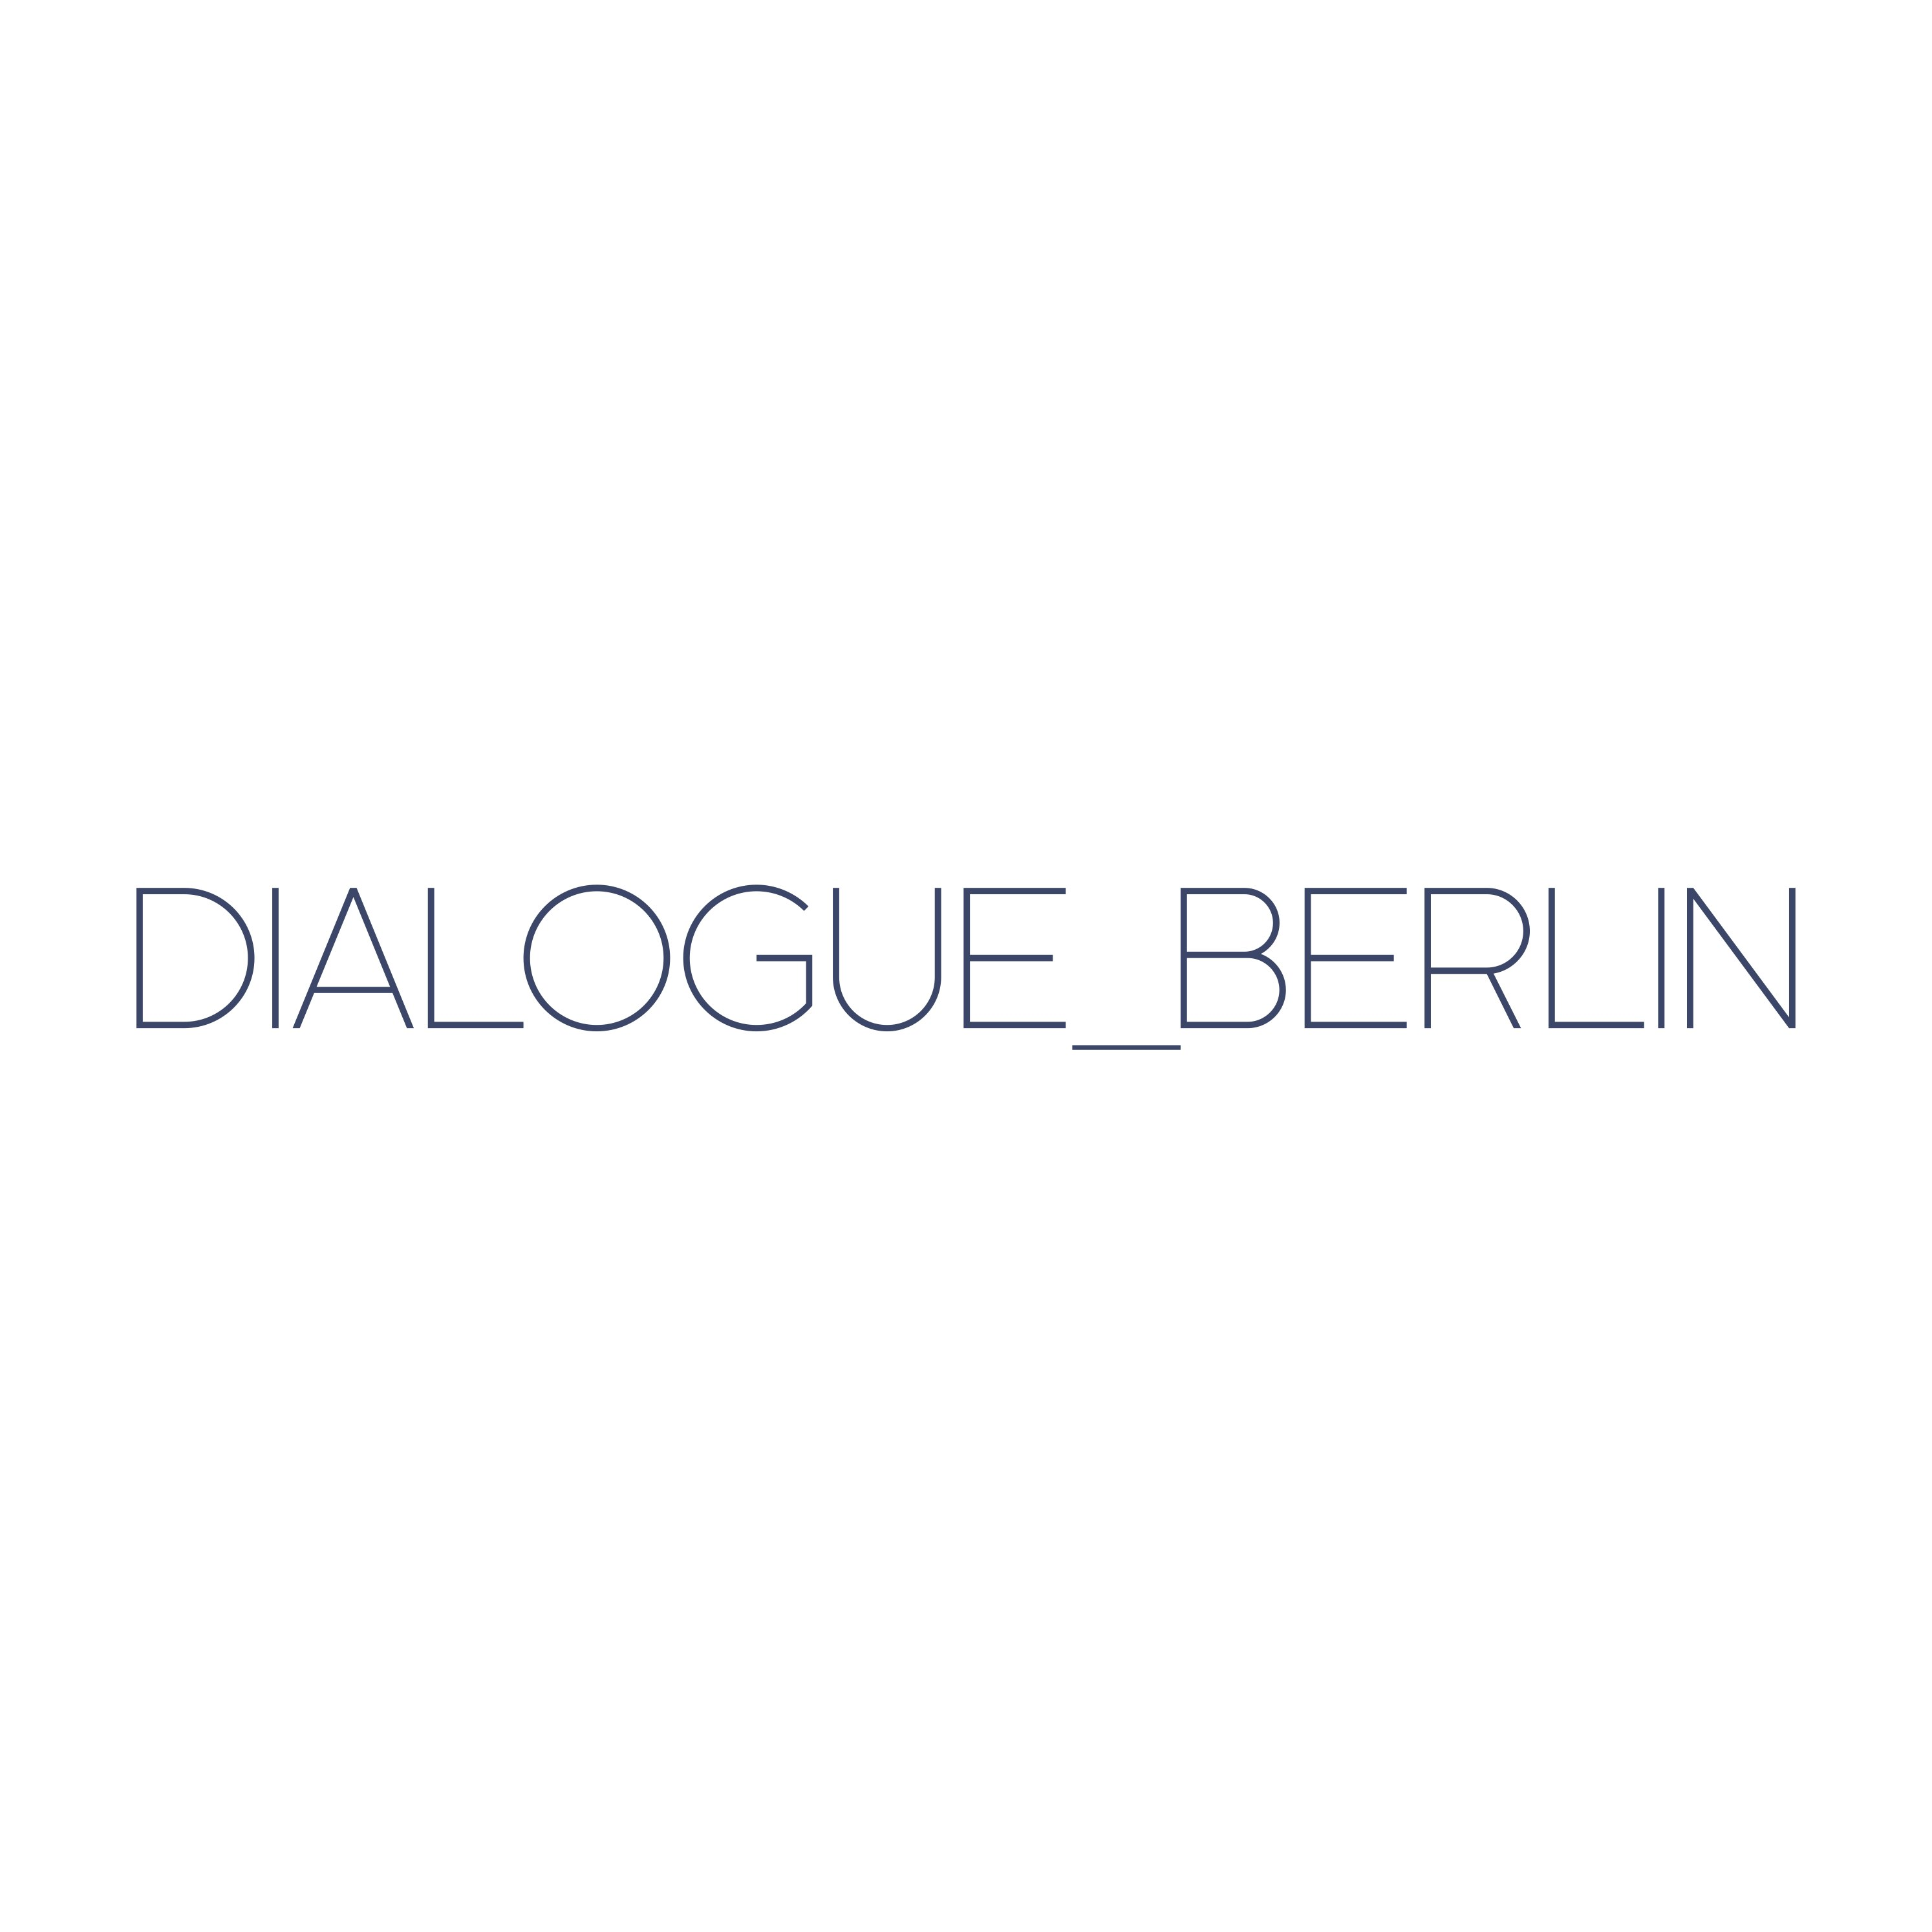 ALLi News – Dramatic Rights With Dialogue Berlin, Member Discounts And A Q&A…